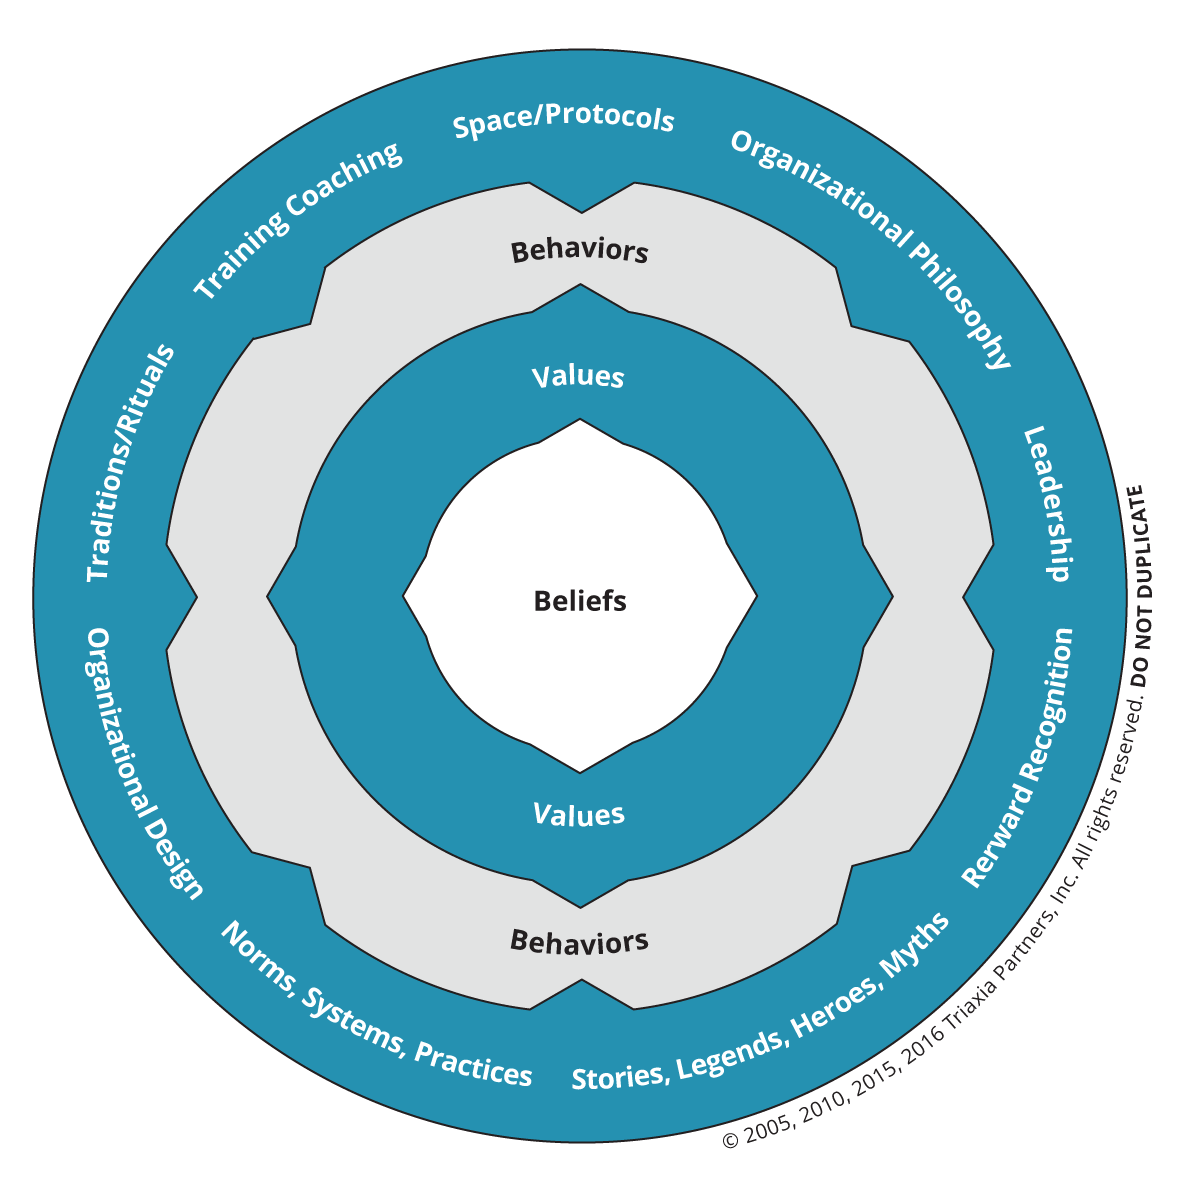 Triaxia Partners Organizational Culture Model